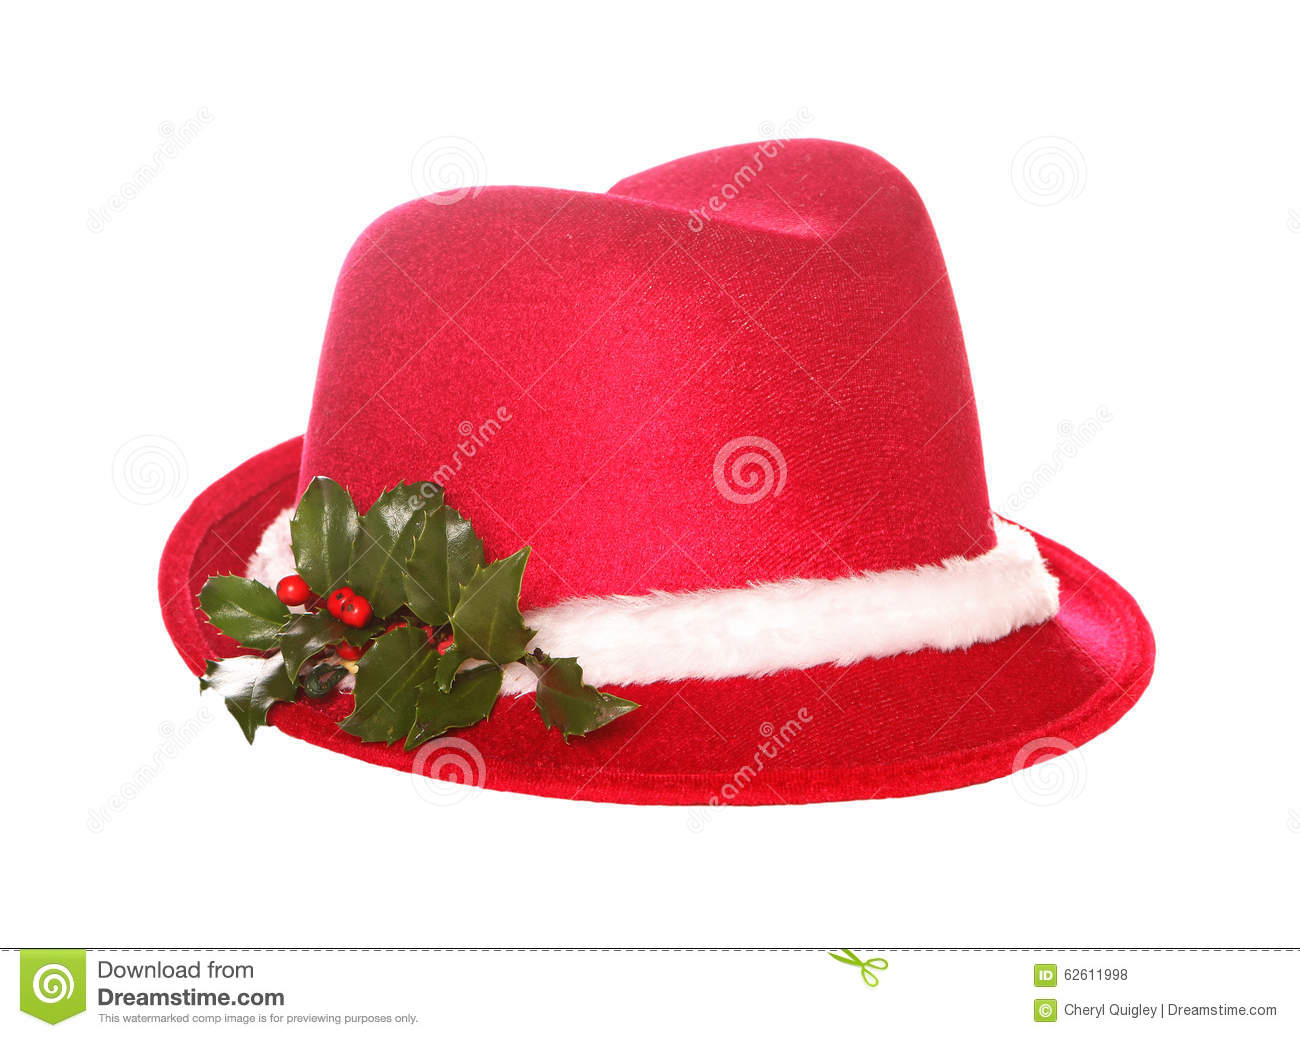 You searched for: christmas fedora hat! Etsy is the home to thousands of handmade, vintage, and one-of-a-kind products and gifts related to your search. No matter what you're looking for or where you are in the world, our global marketplace of sellers can help you find unique and affordable options. Let's get started!